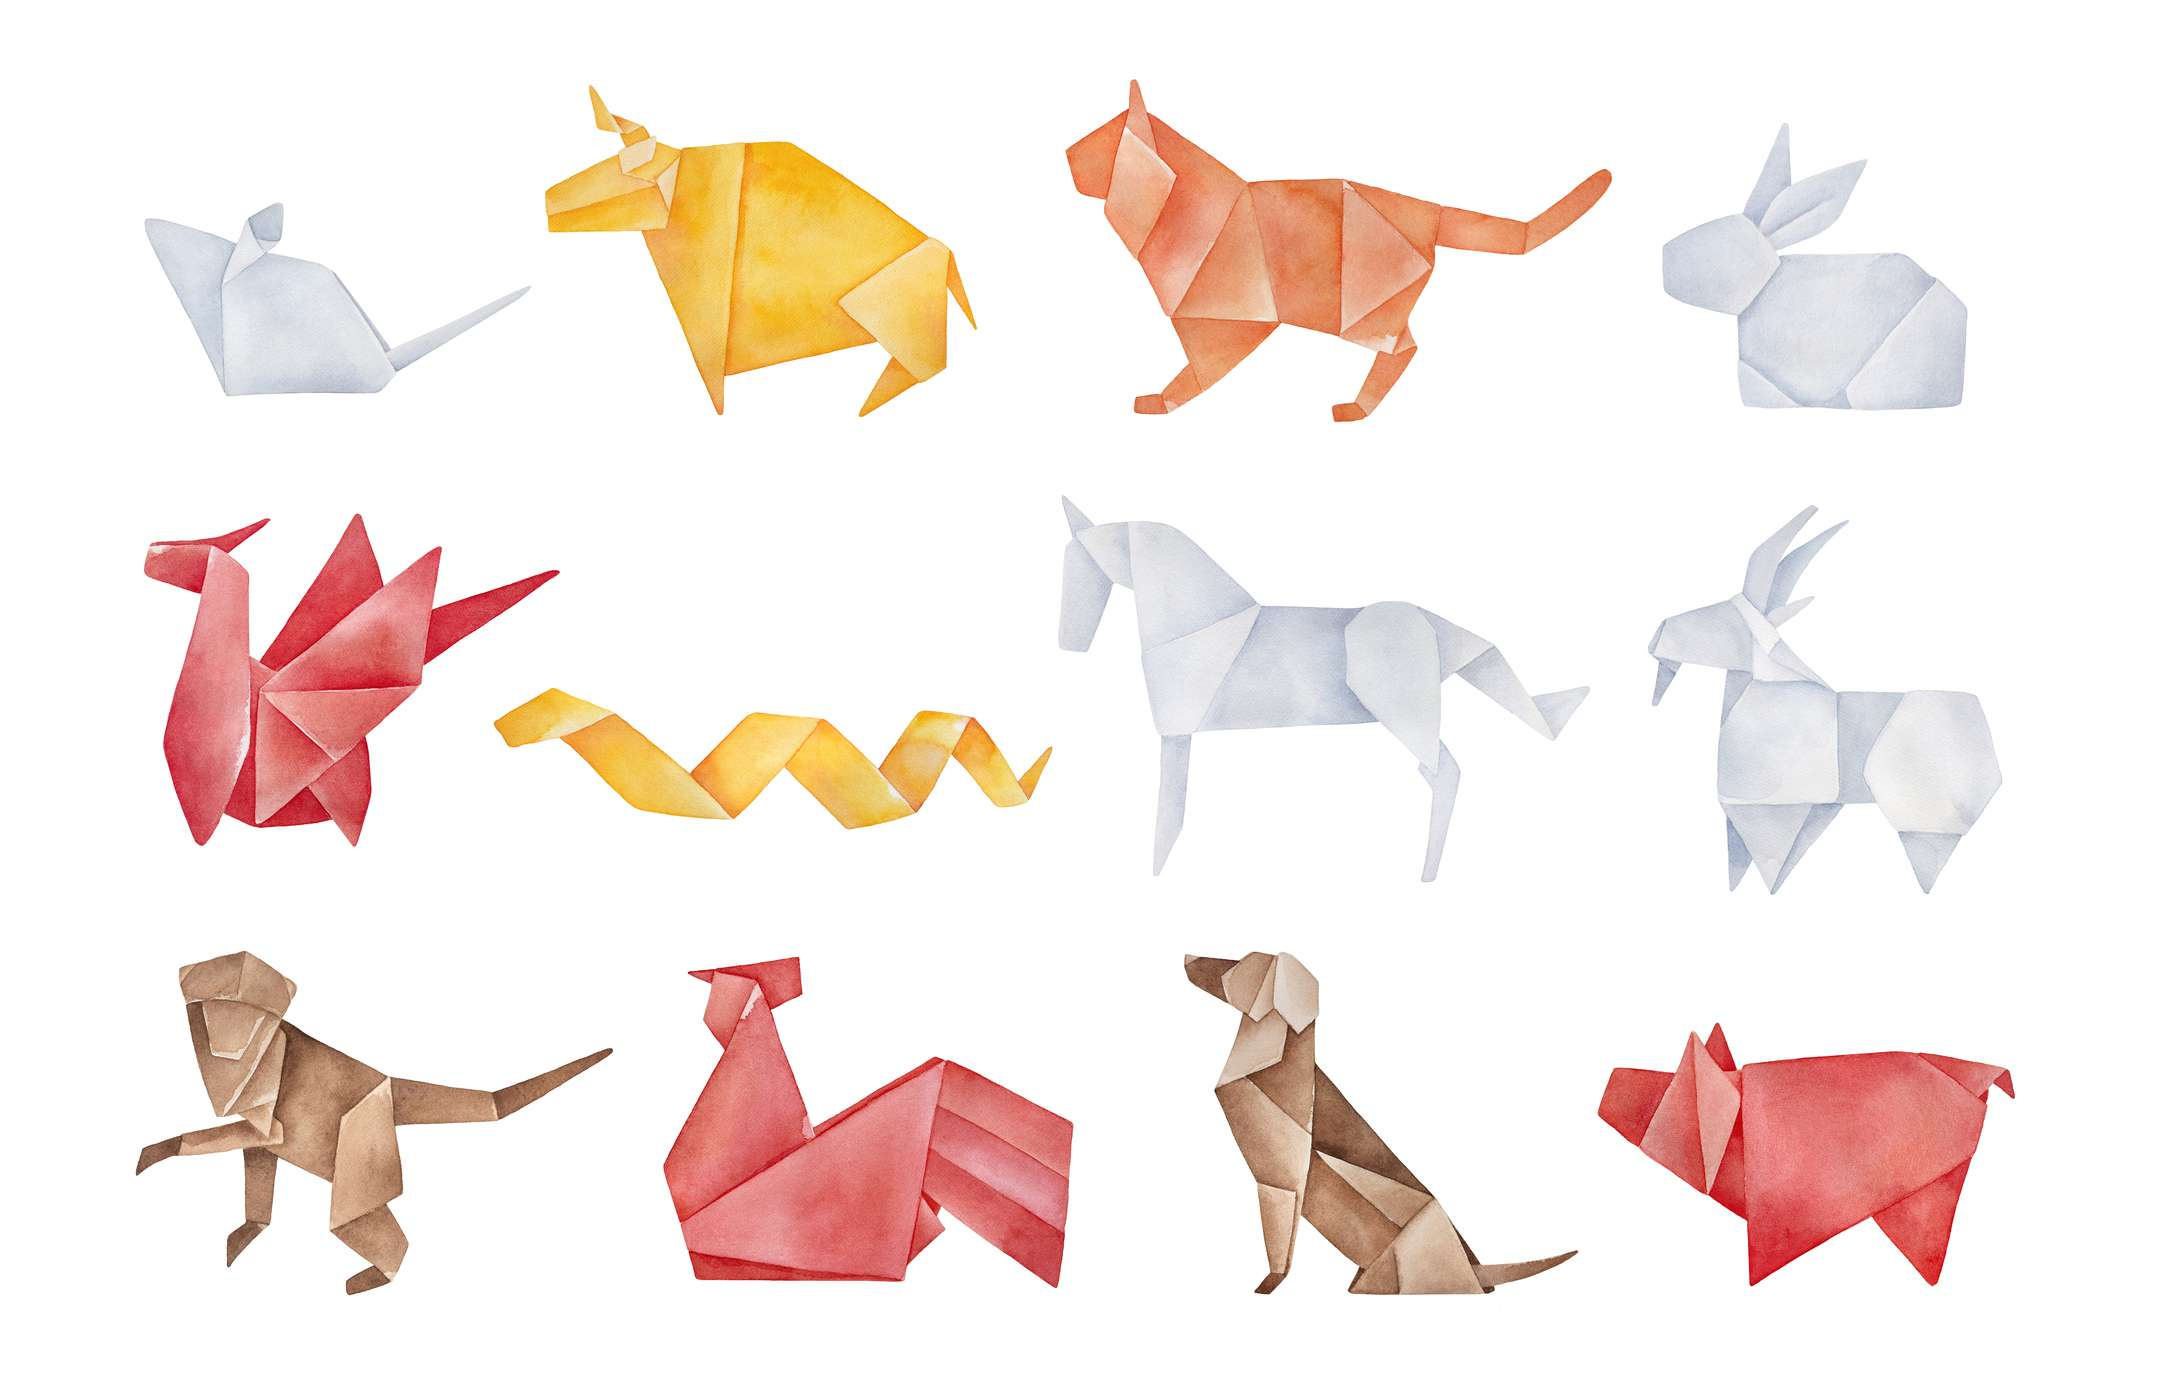 Folded origami pack of twelve traditional Chinese Zodiac Animals. Red, yellow, brown, orange, light gray colors. Hand drawn watercolour graphic drawing